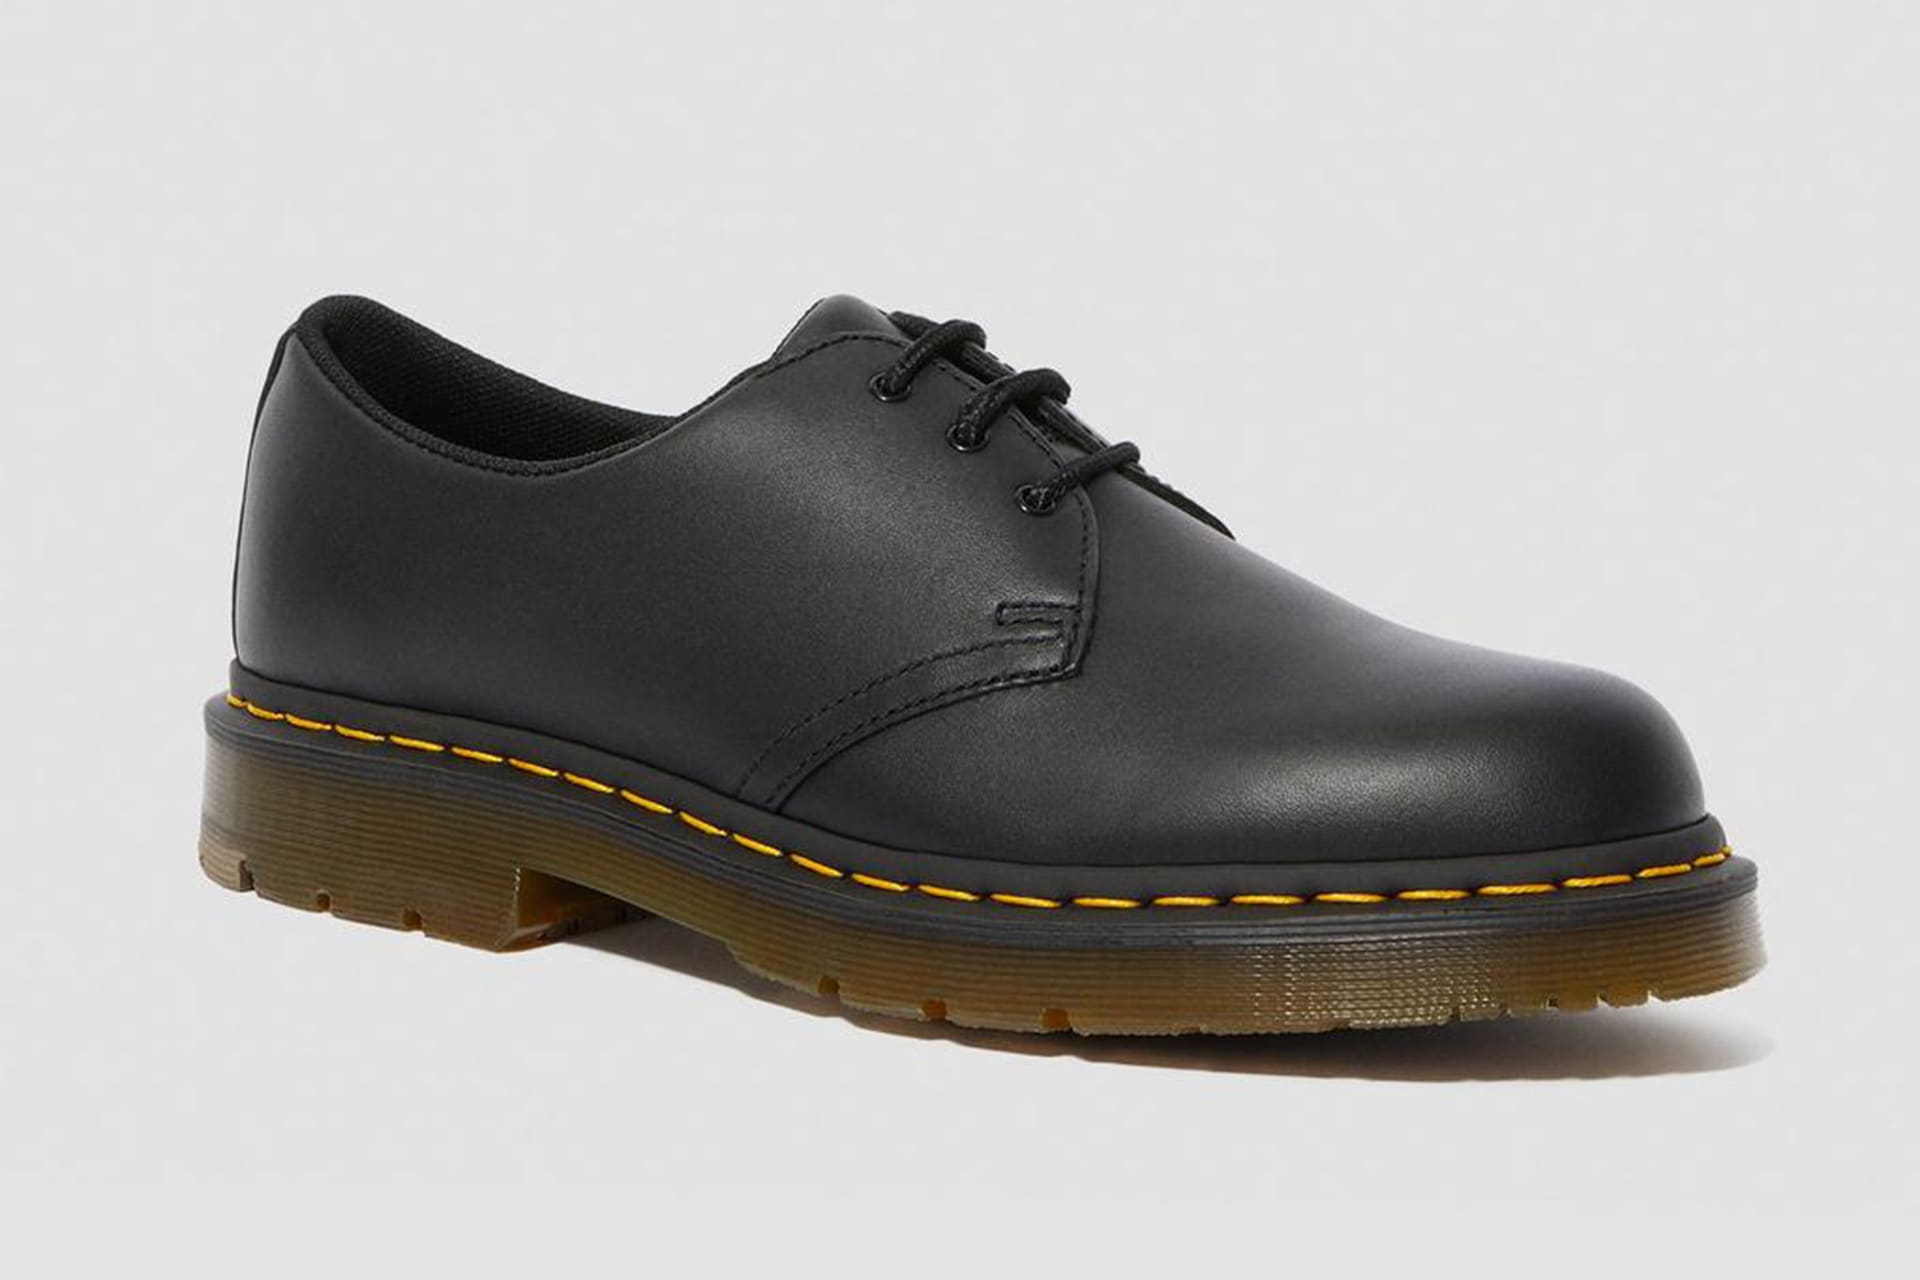 5 best chef shoes. Hard-working shoes